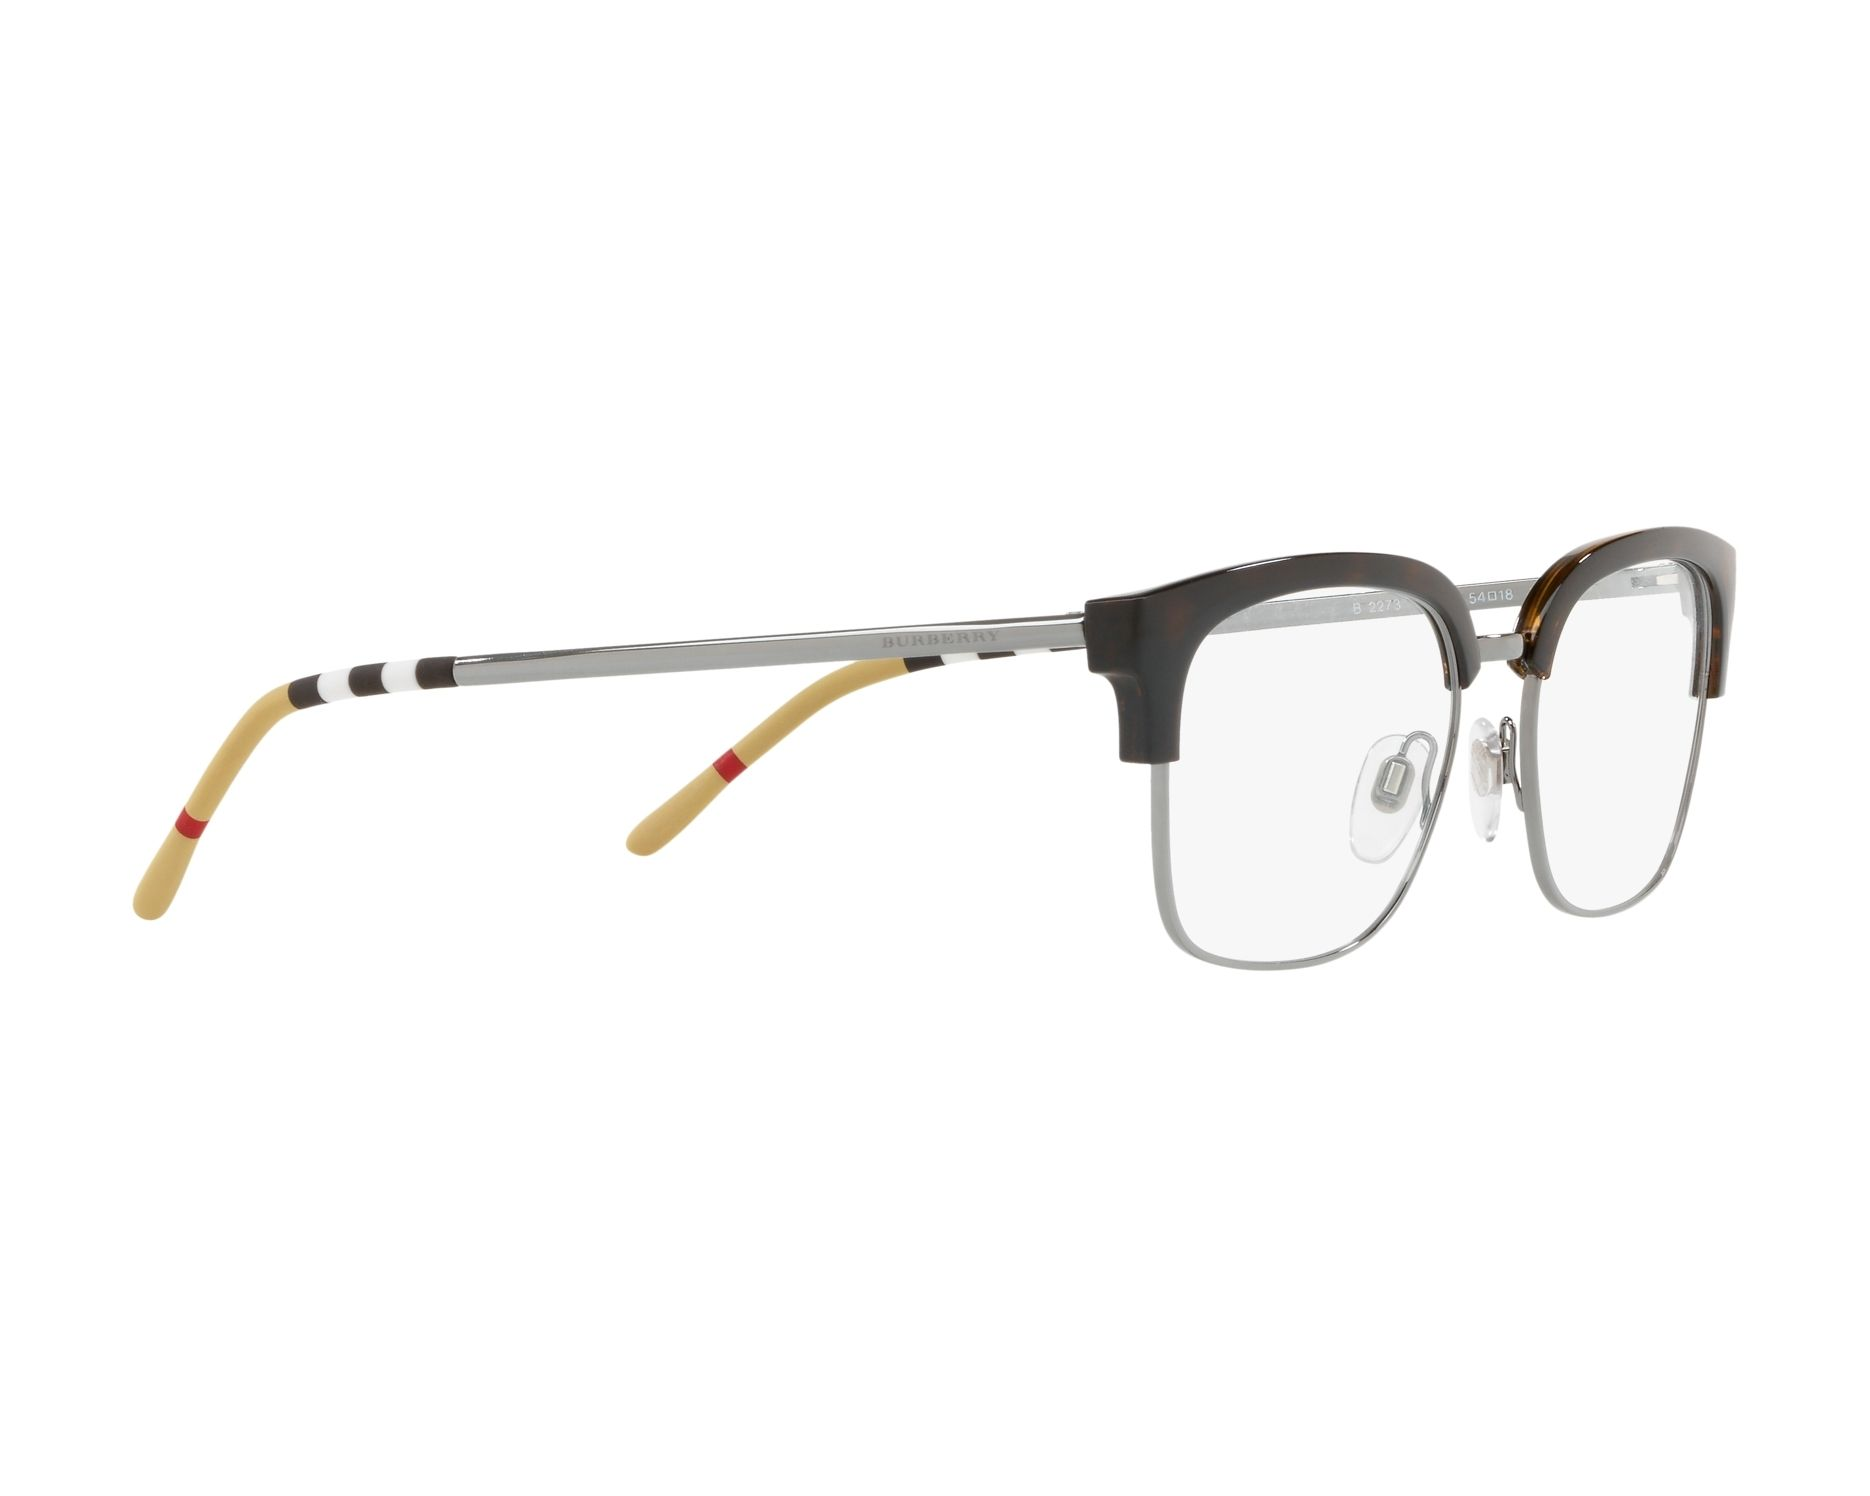 eyeglasses Burberry BE-2273 3002 54-18 Havana Gun 360 degree view 11